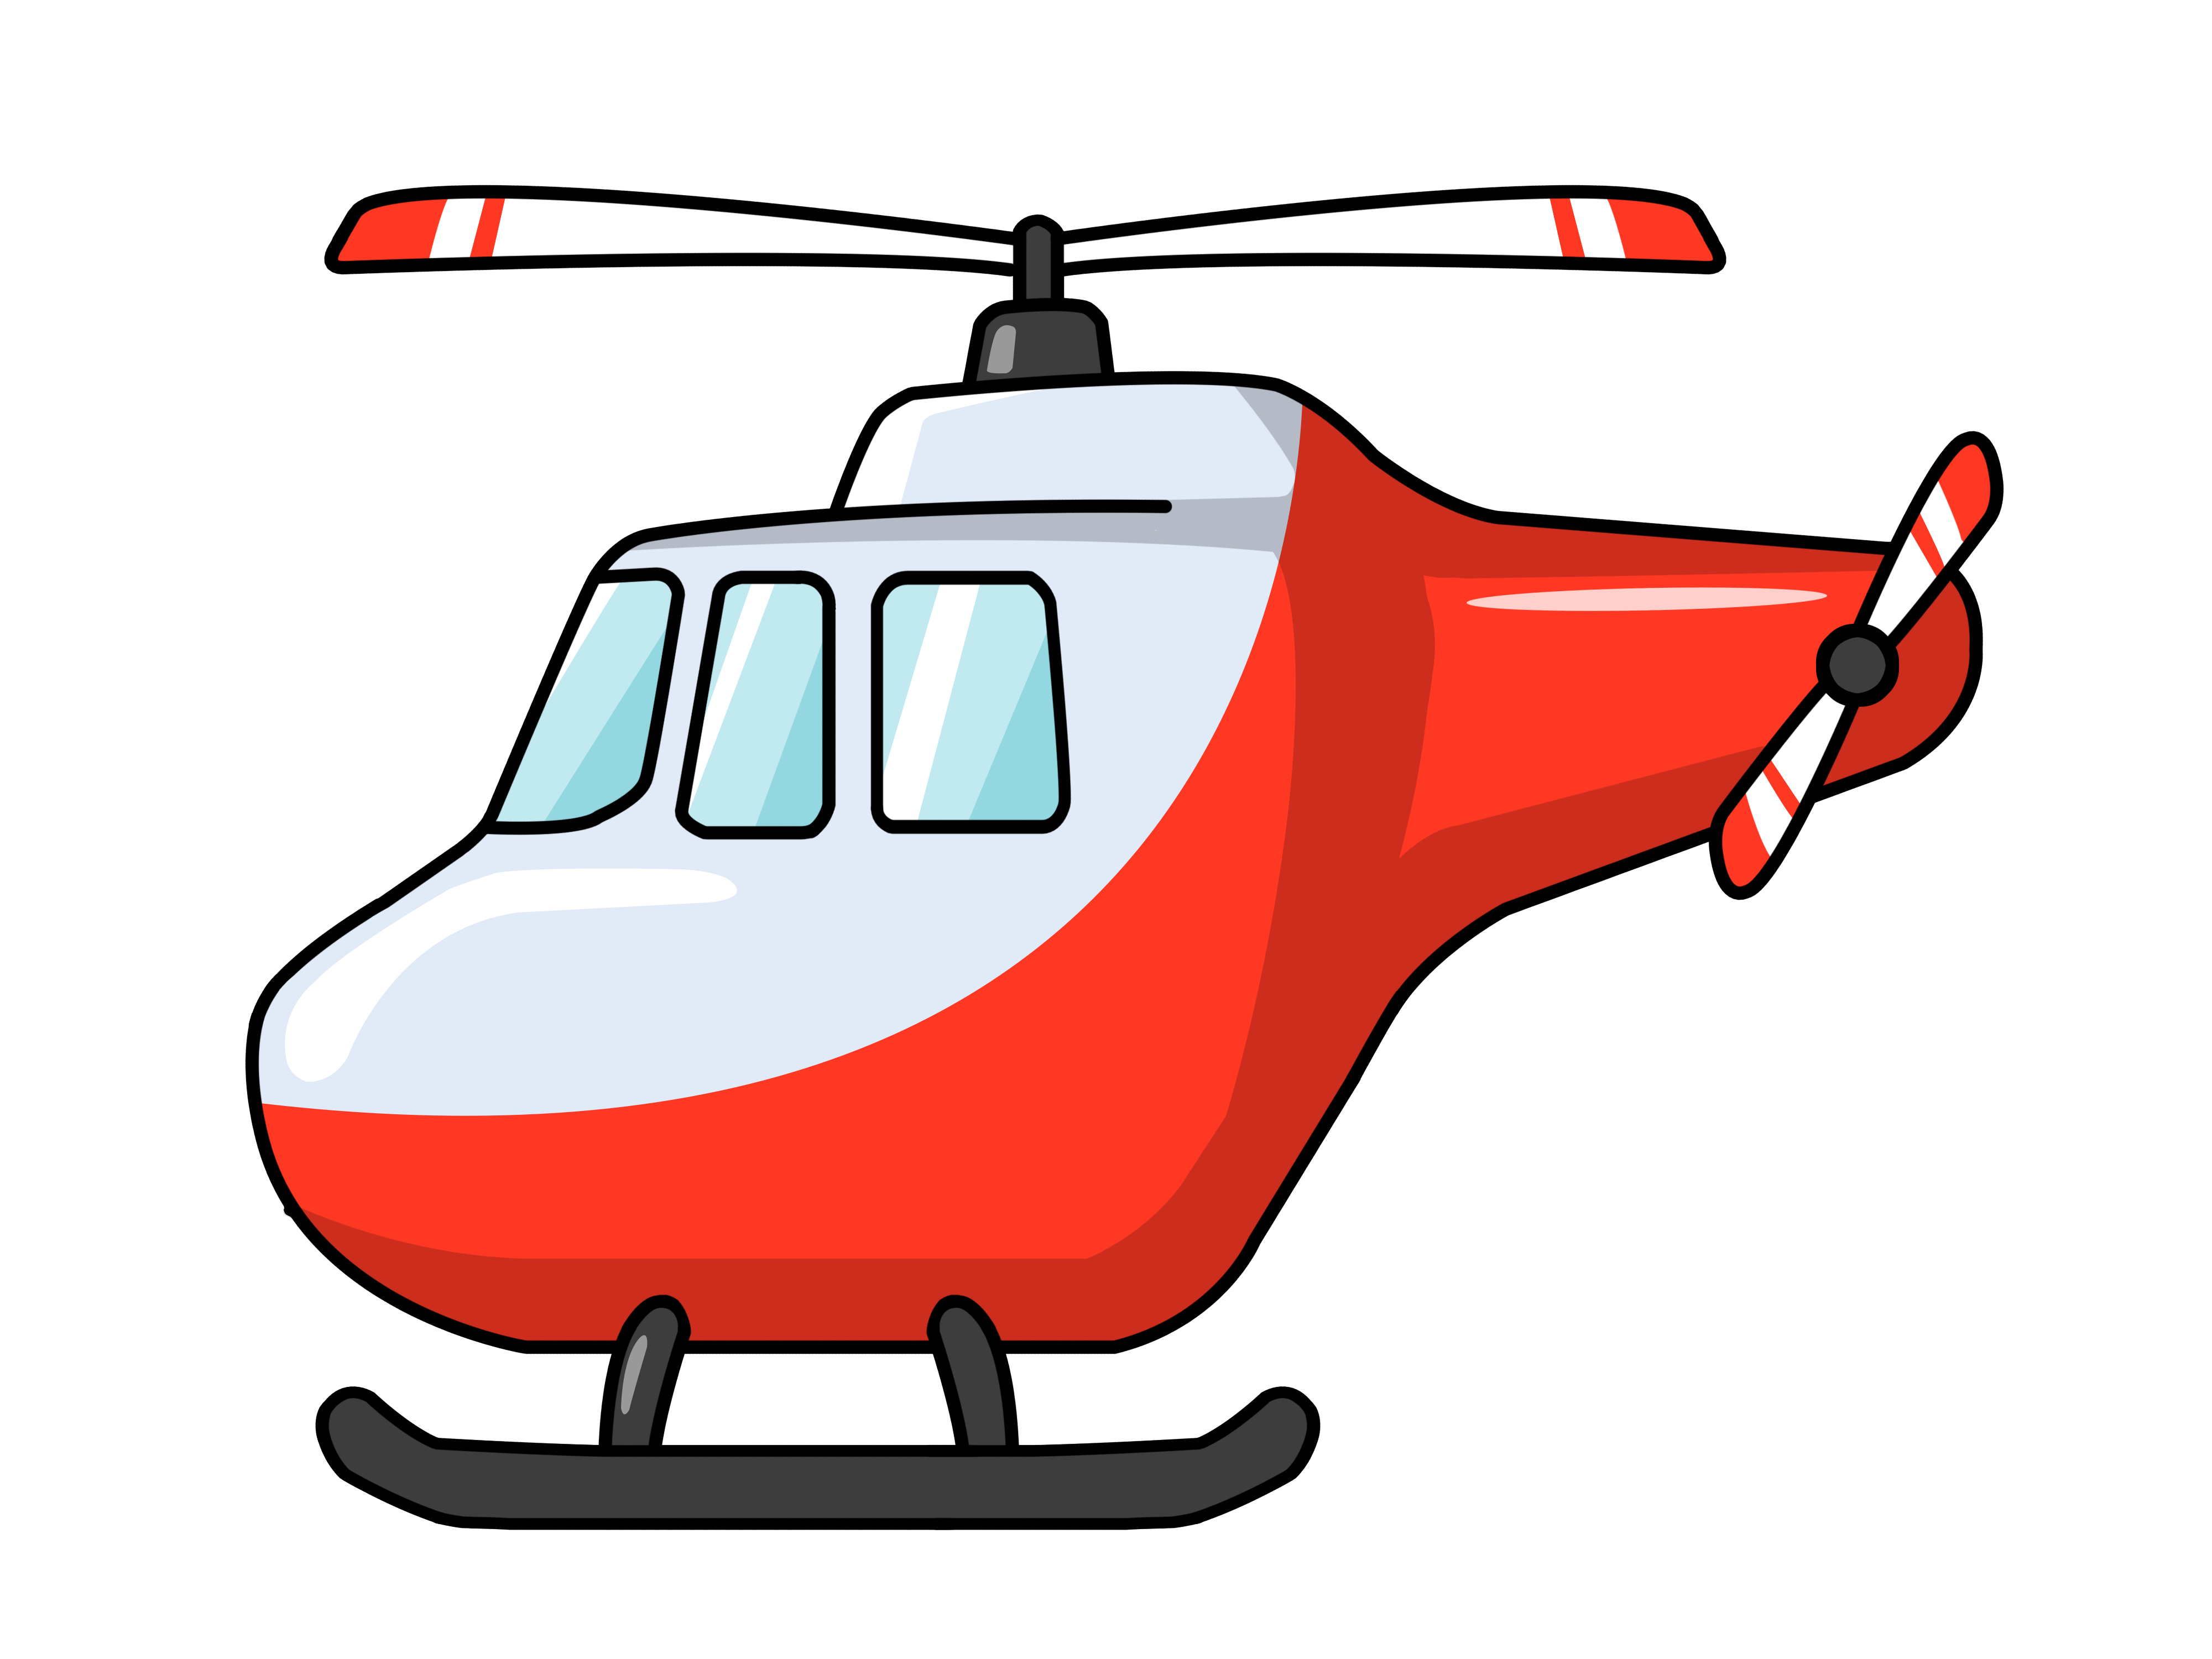 4000x3000 Helicopter Clipart